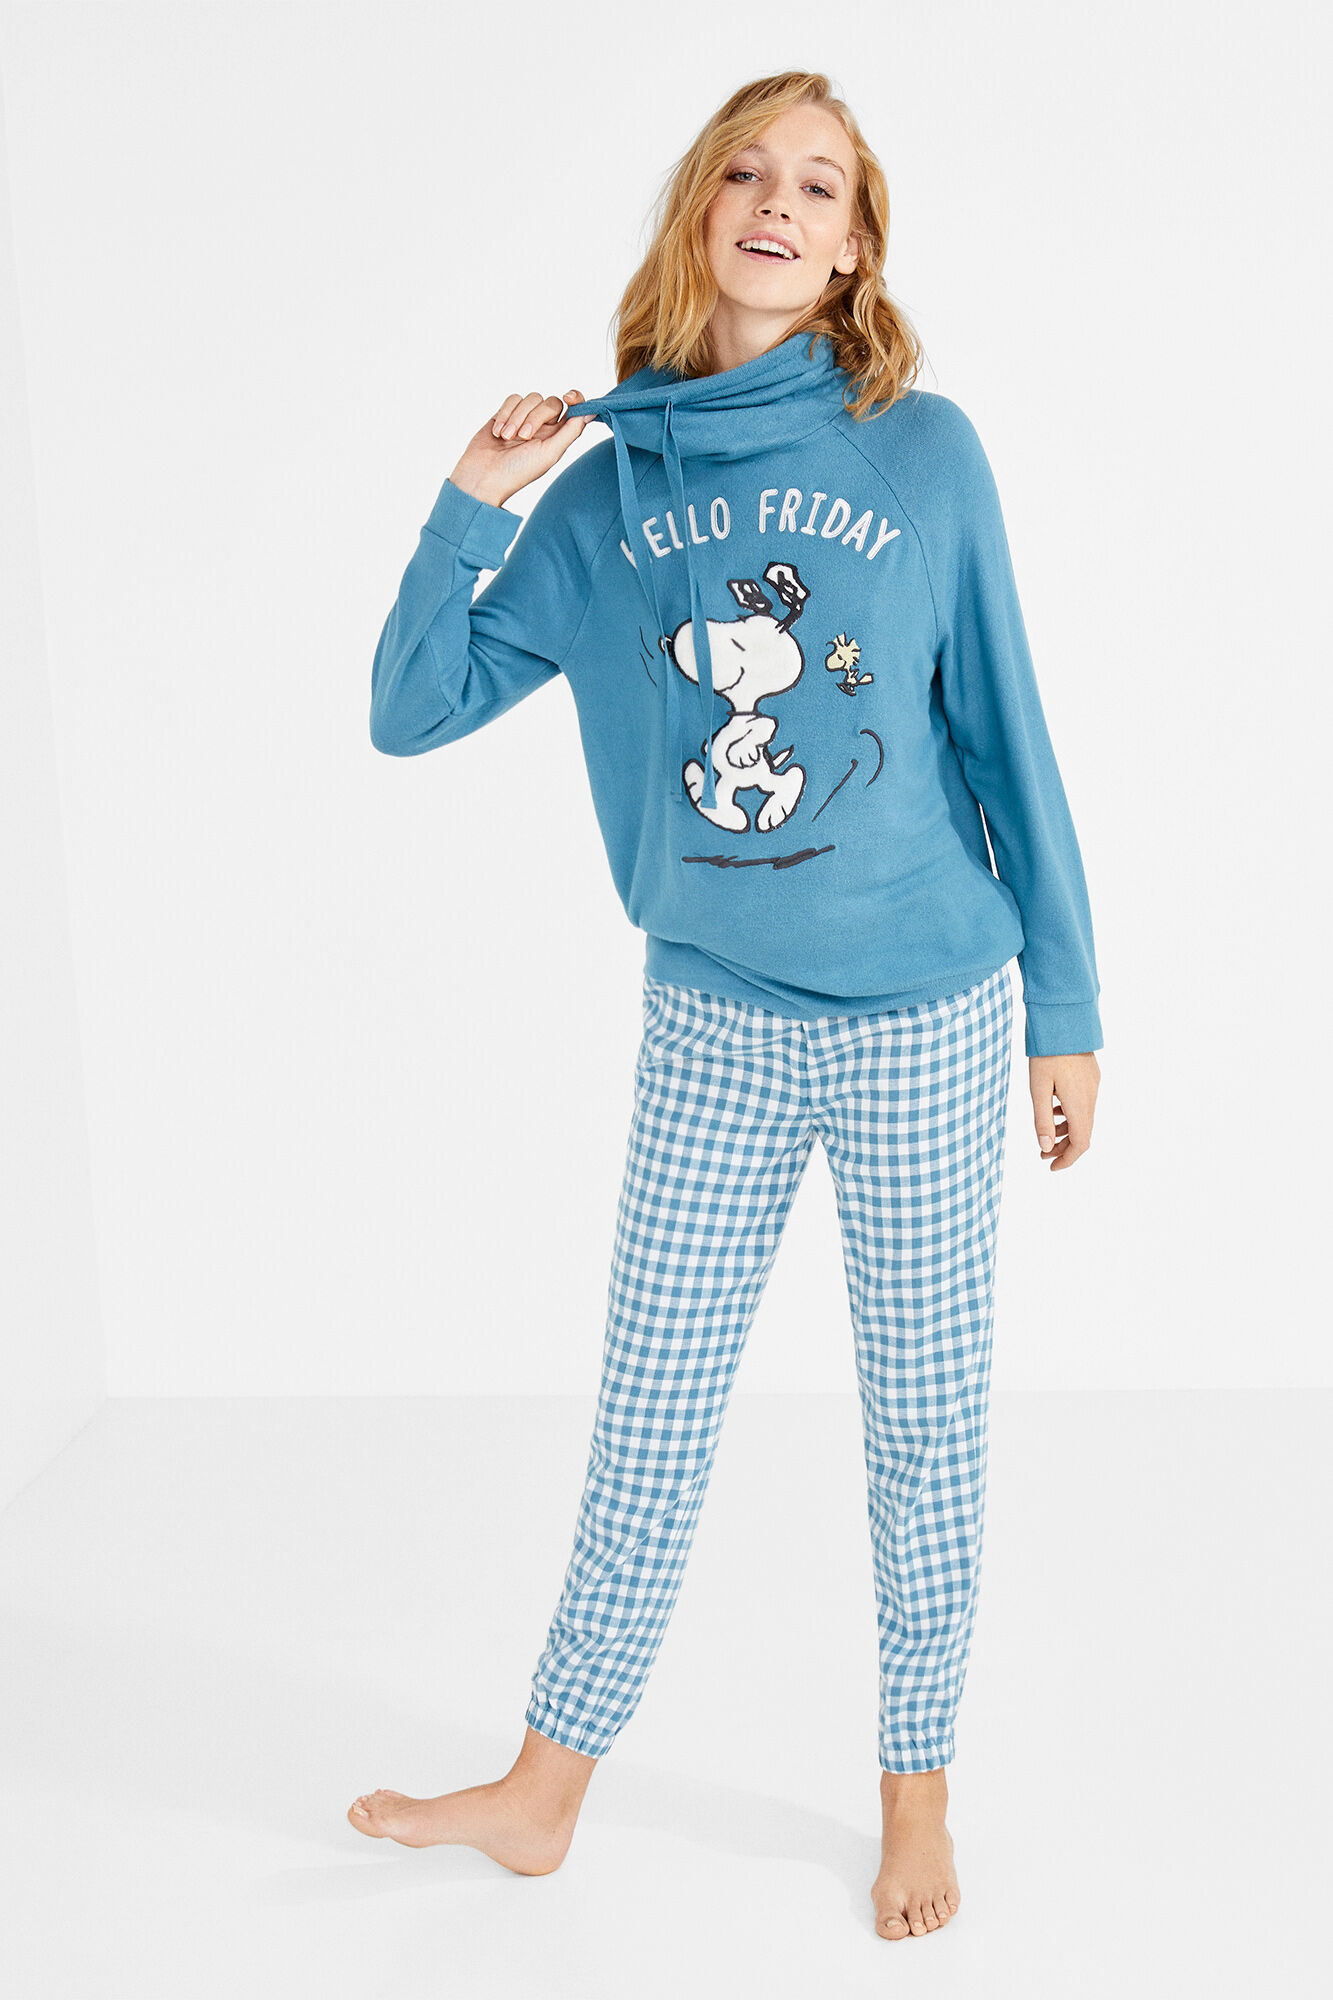 96f3bb54d Pijama largo Snoopy  Hello Friday